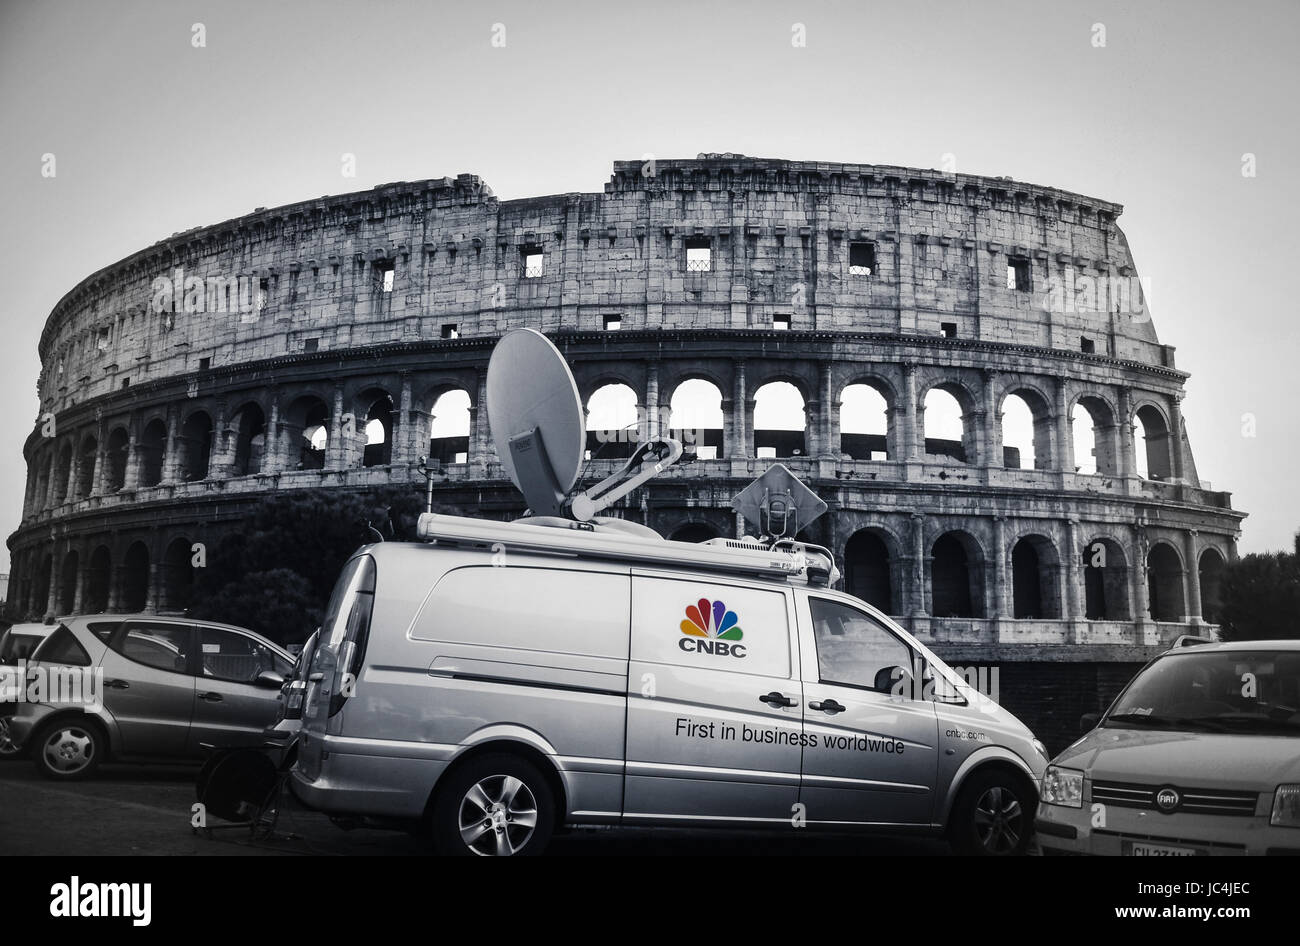 CNBC Van in front of Colosseum in Rome - Stock Image